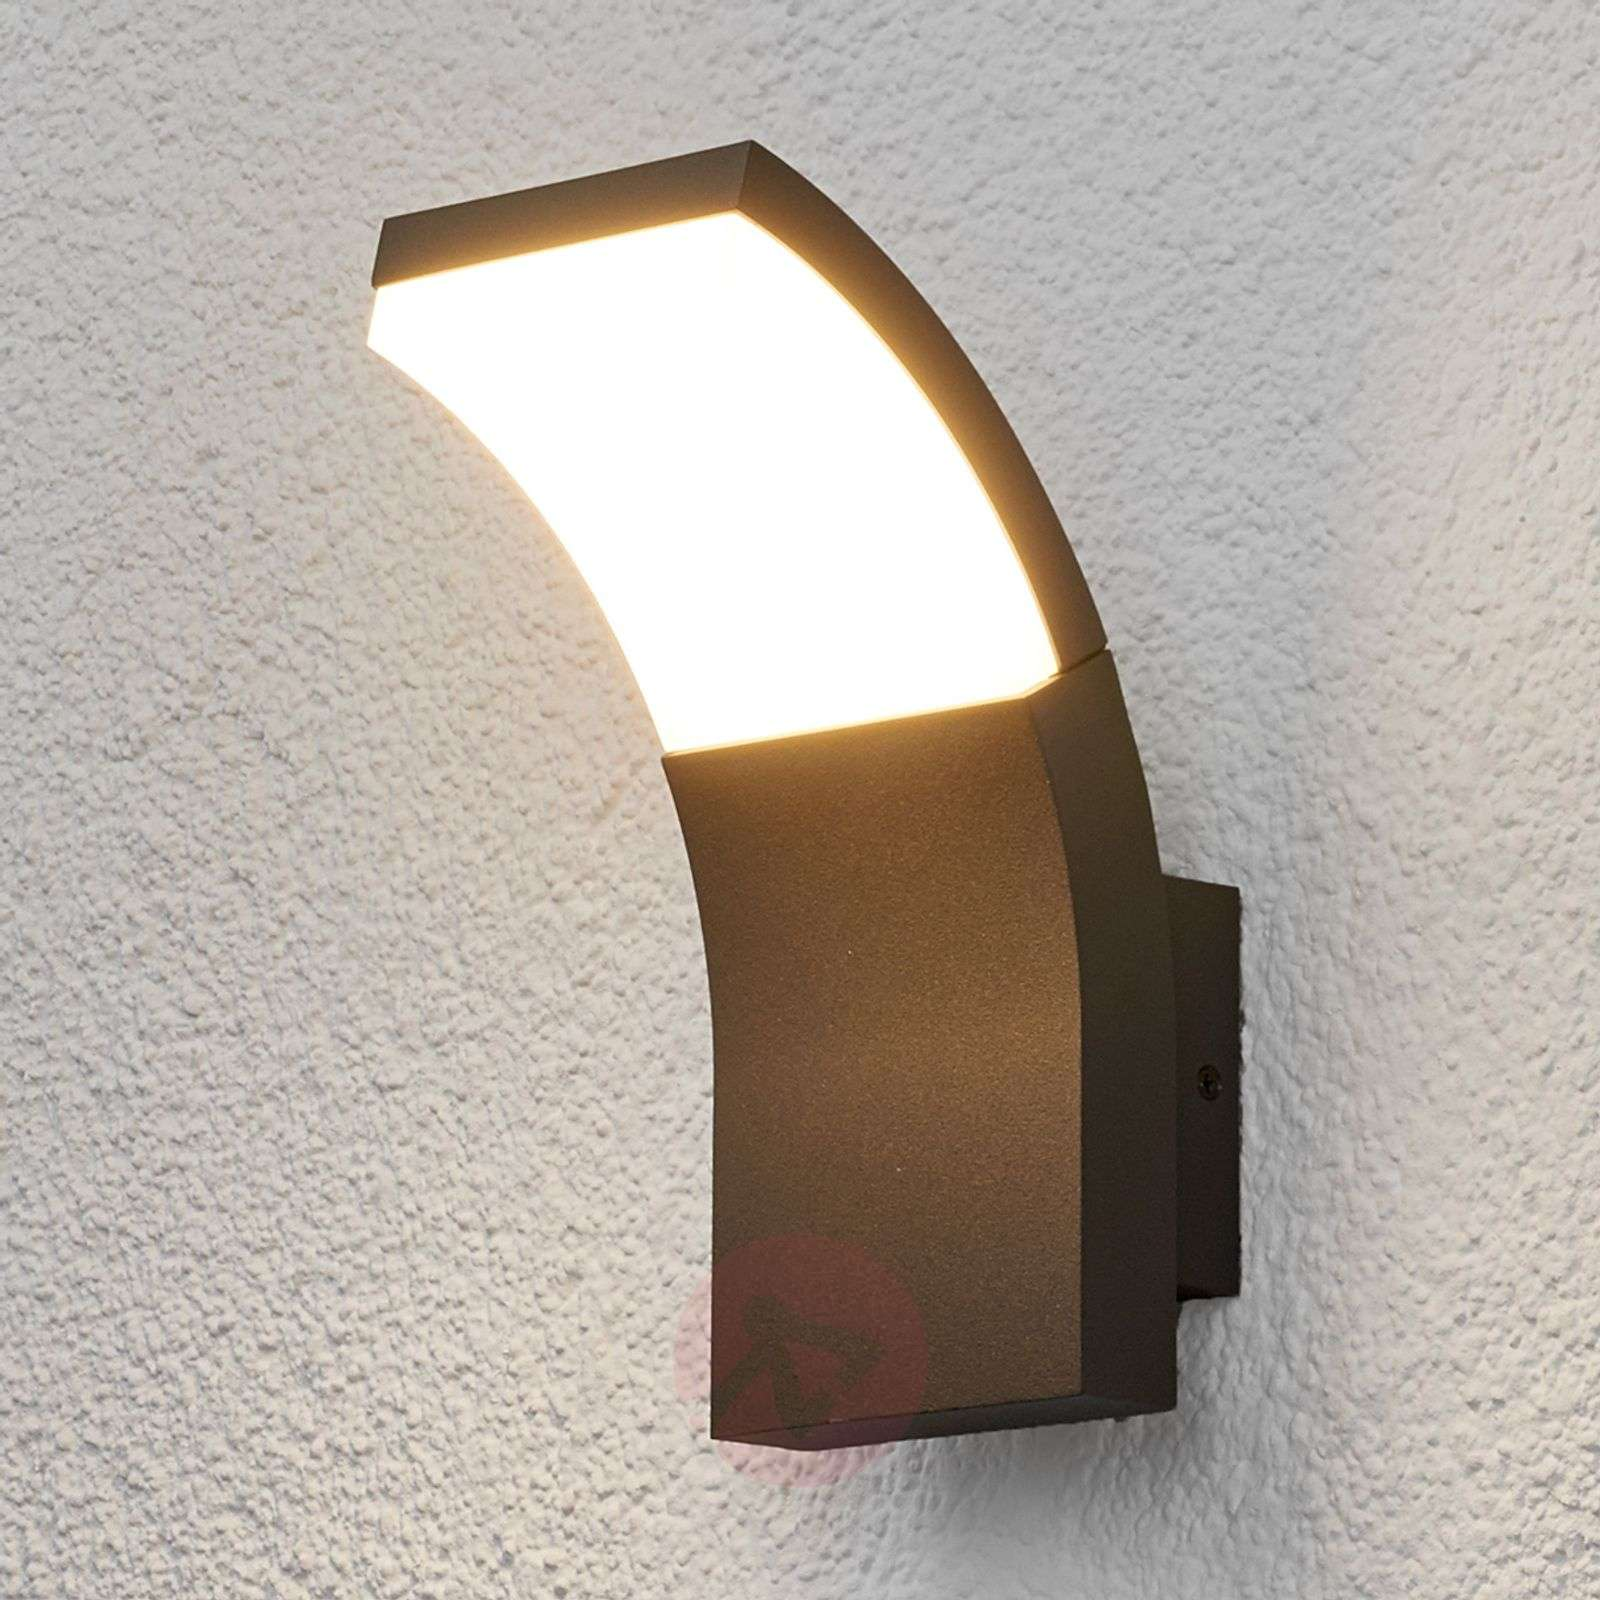 Outdoor wall lights lights led outdoor wall light timm aloadofball Gallery